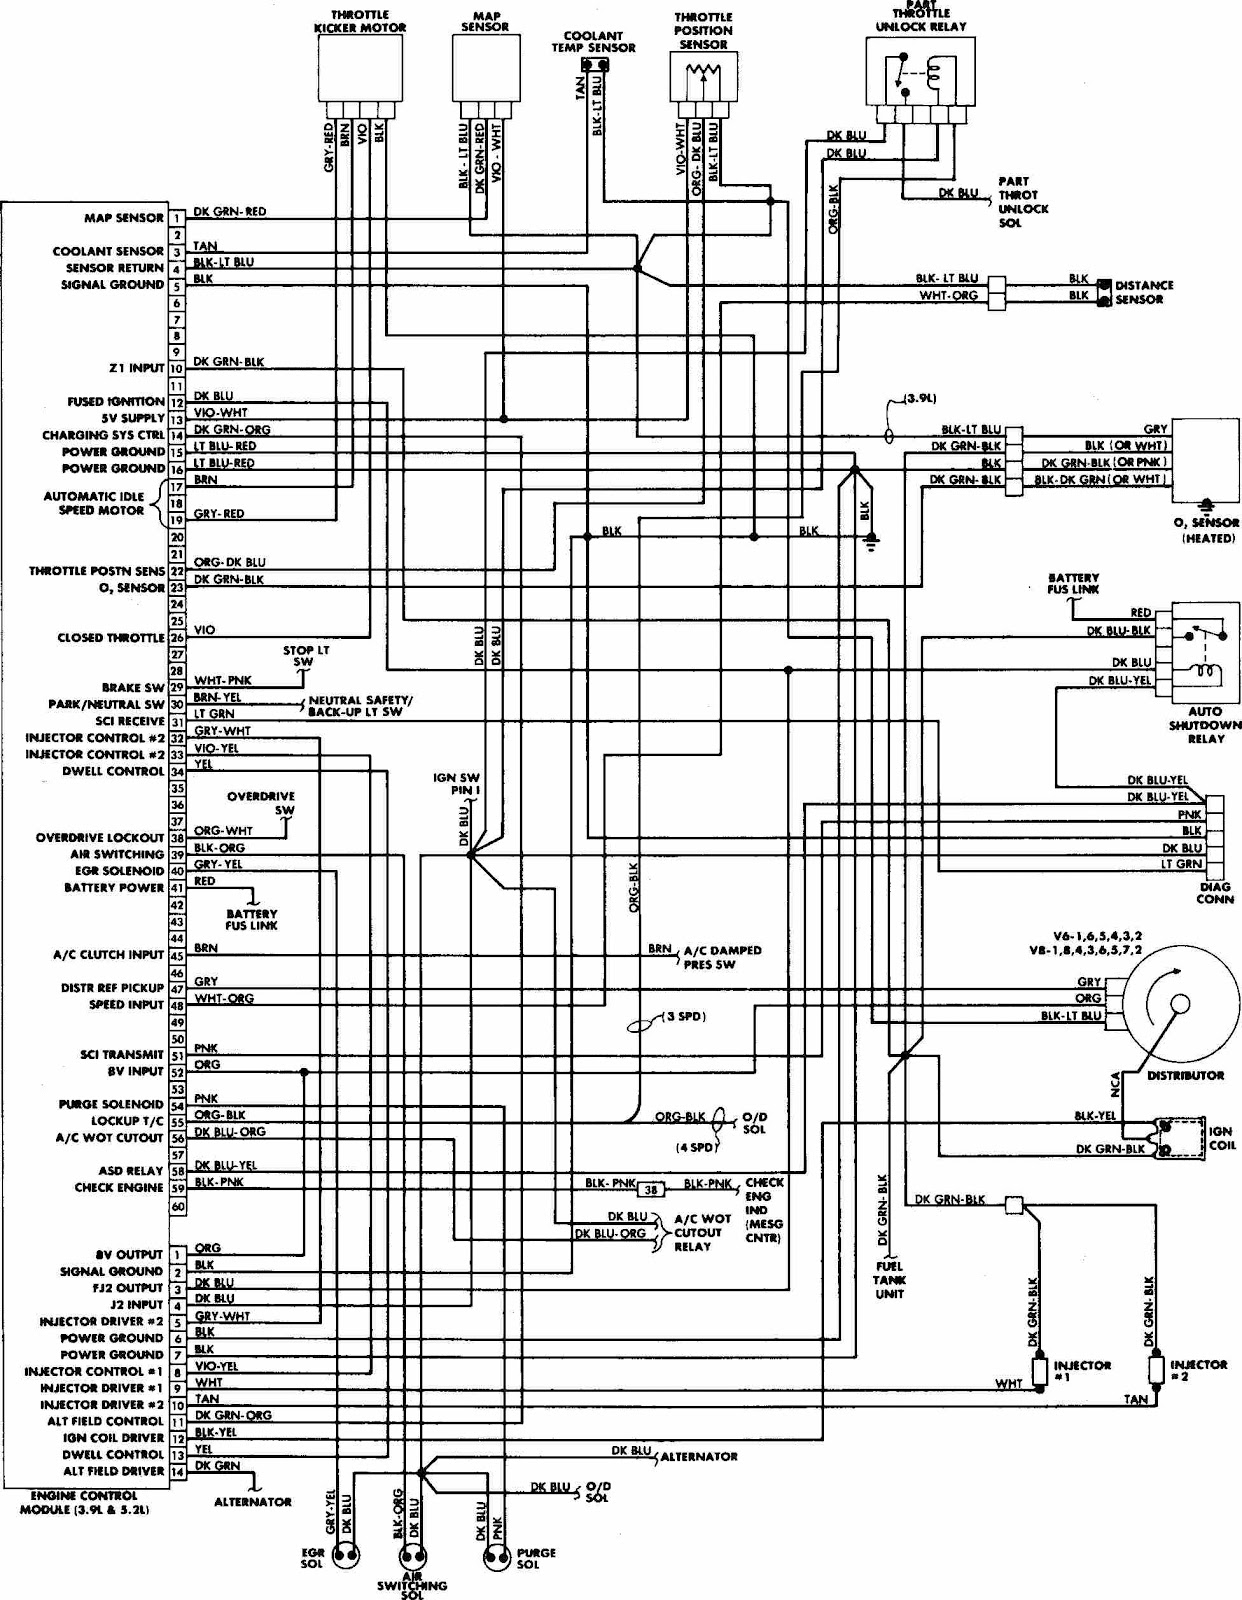 engine control module electrical diagram car wiring